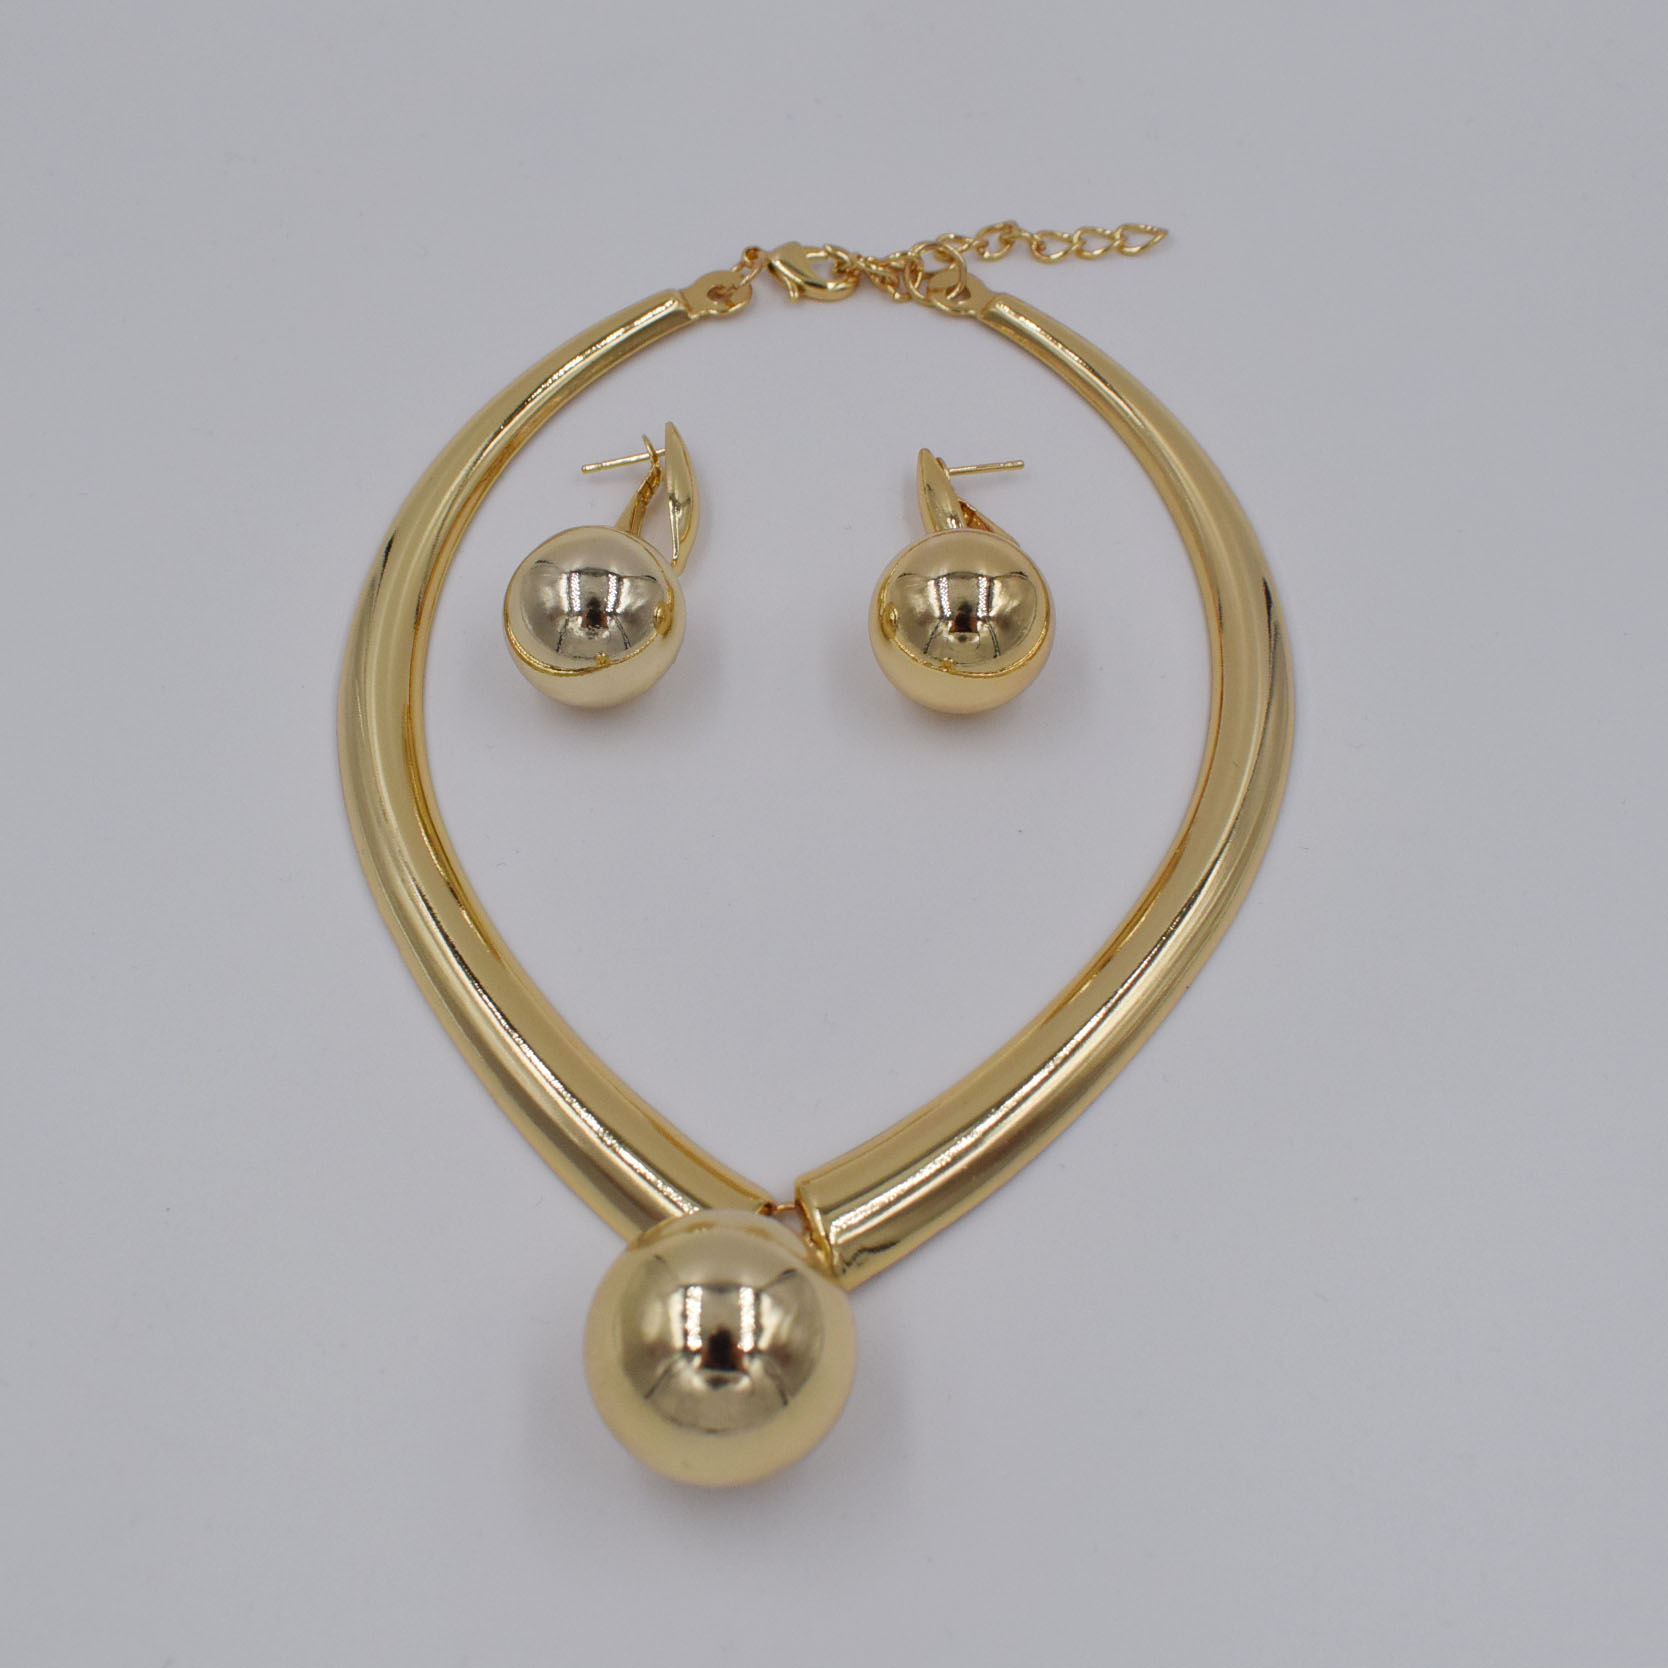 Image 3 - High Quality Ltaly 750 Gold color Jewelry Set For Women african beads jewlery fashion necklace set earring jewelryJewelry Sets   -